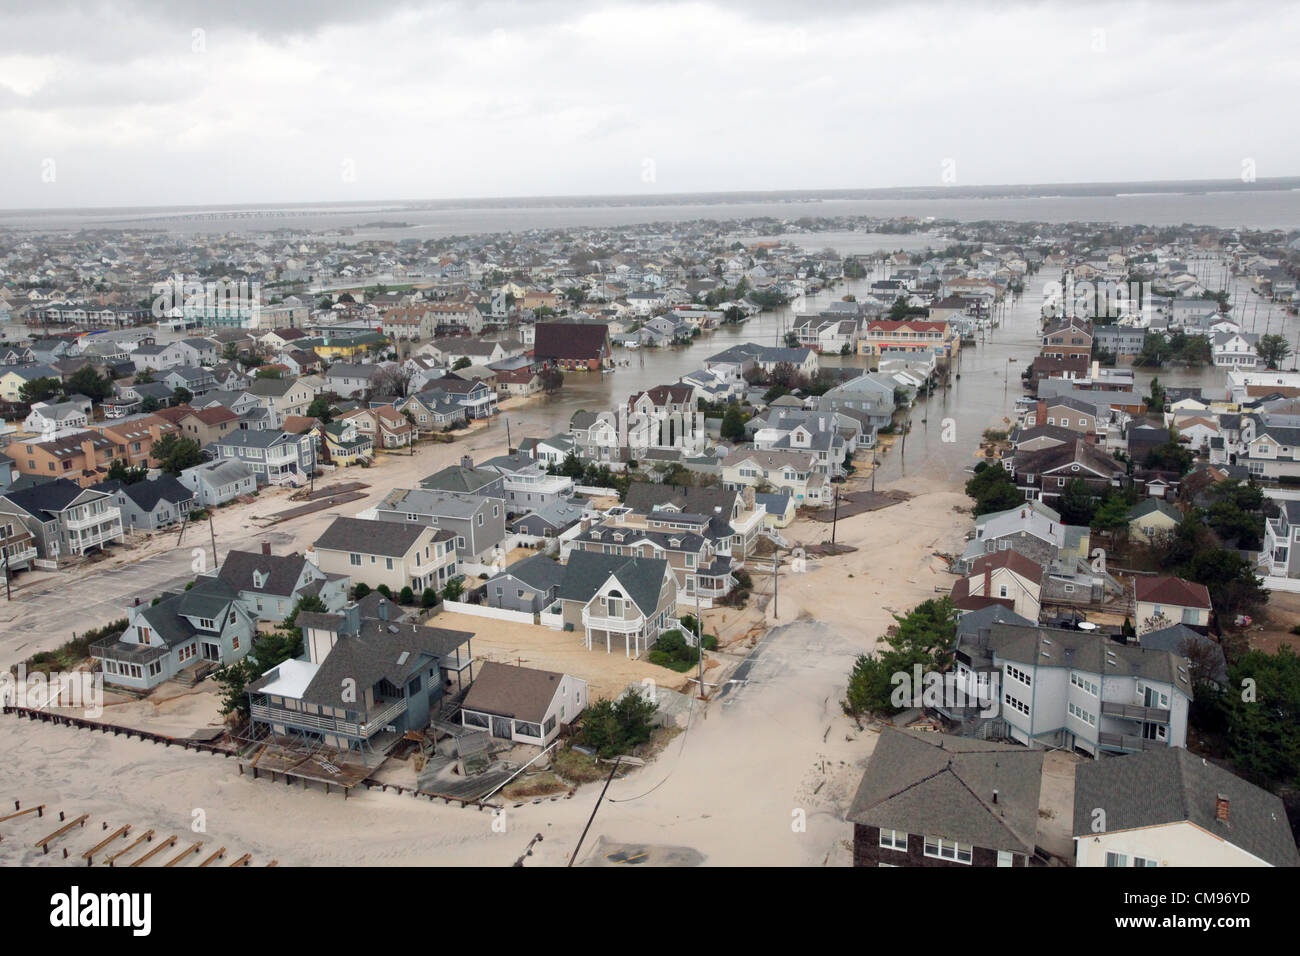 Aerial views of the damage caused by Hurricane Sandy to the New Jersey October 30, 2012. - Stock Image